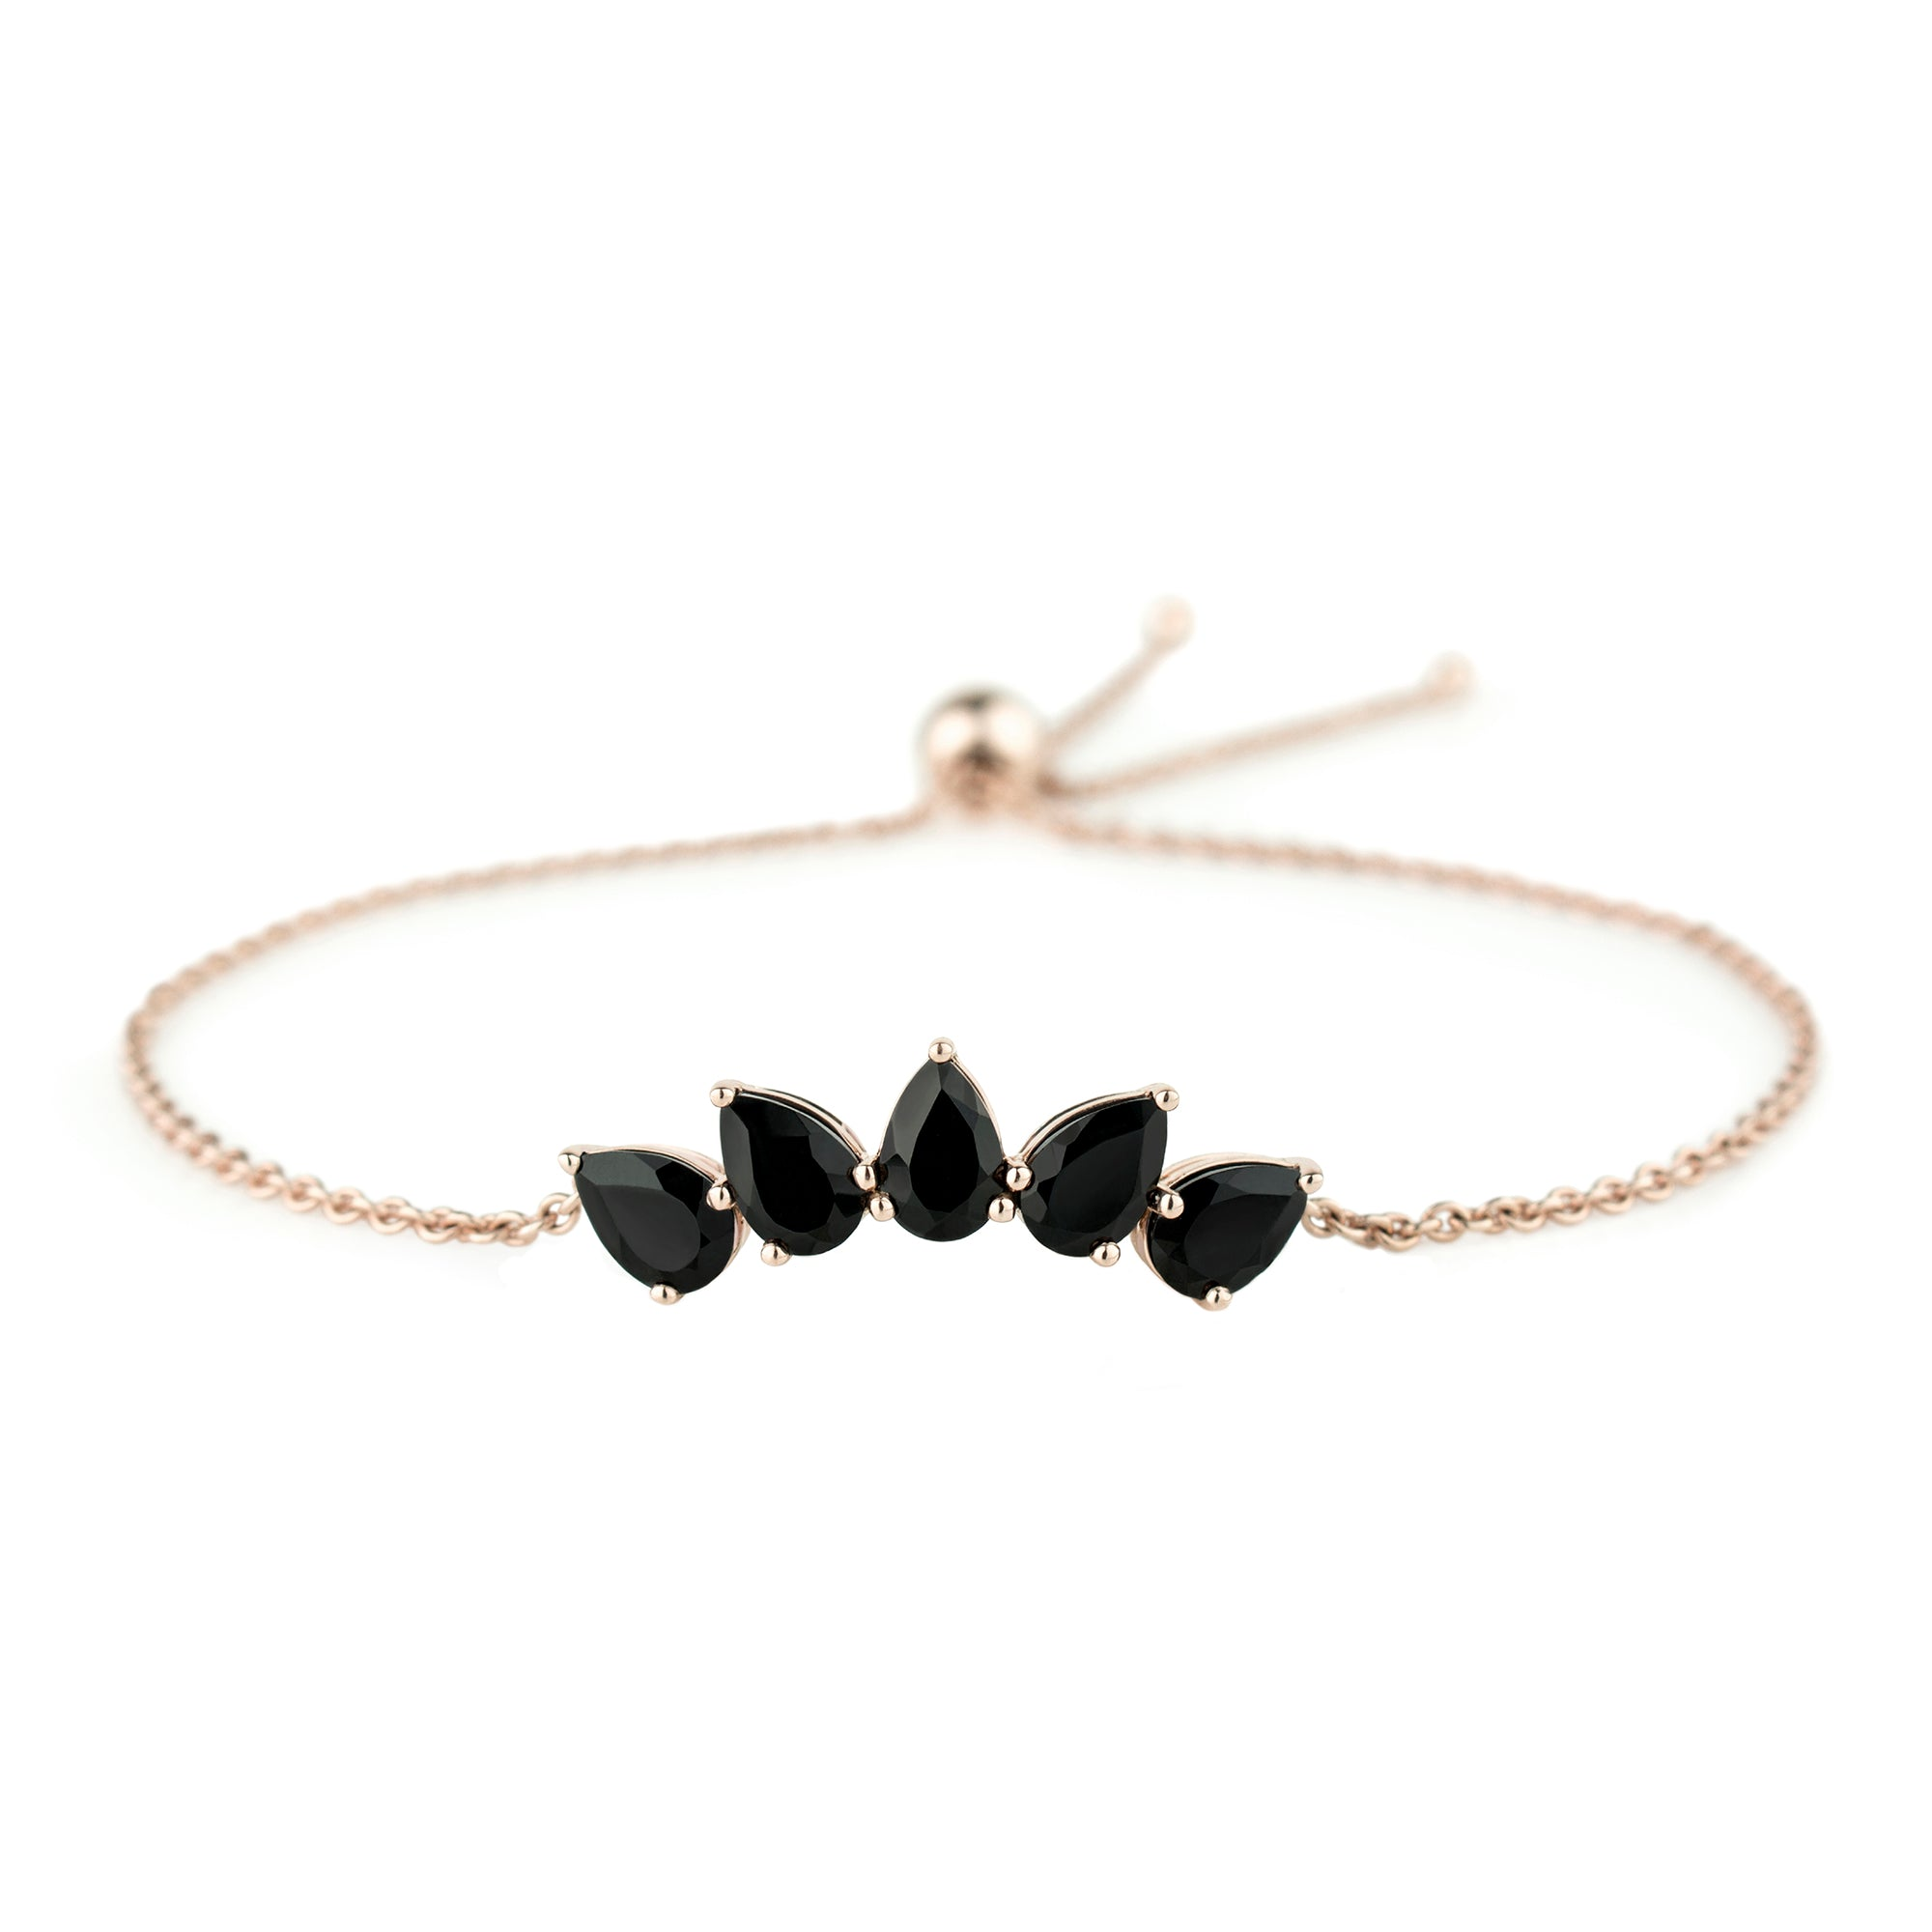 Black Spinel Honore Bracelet by Altruist for Broken English Jewelry